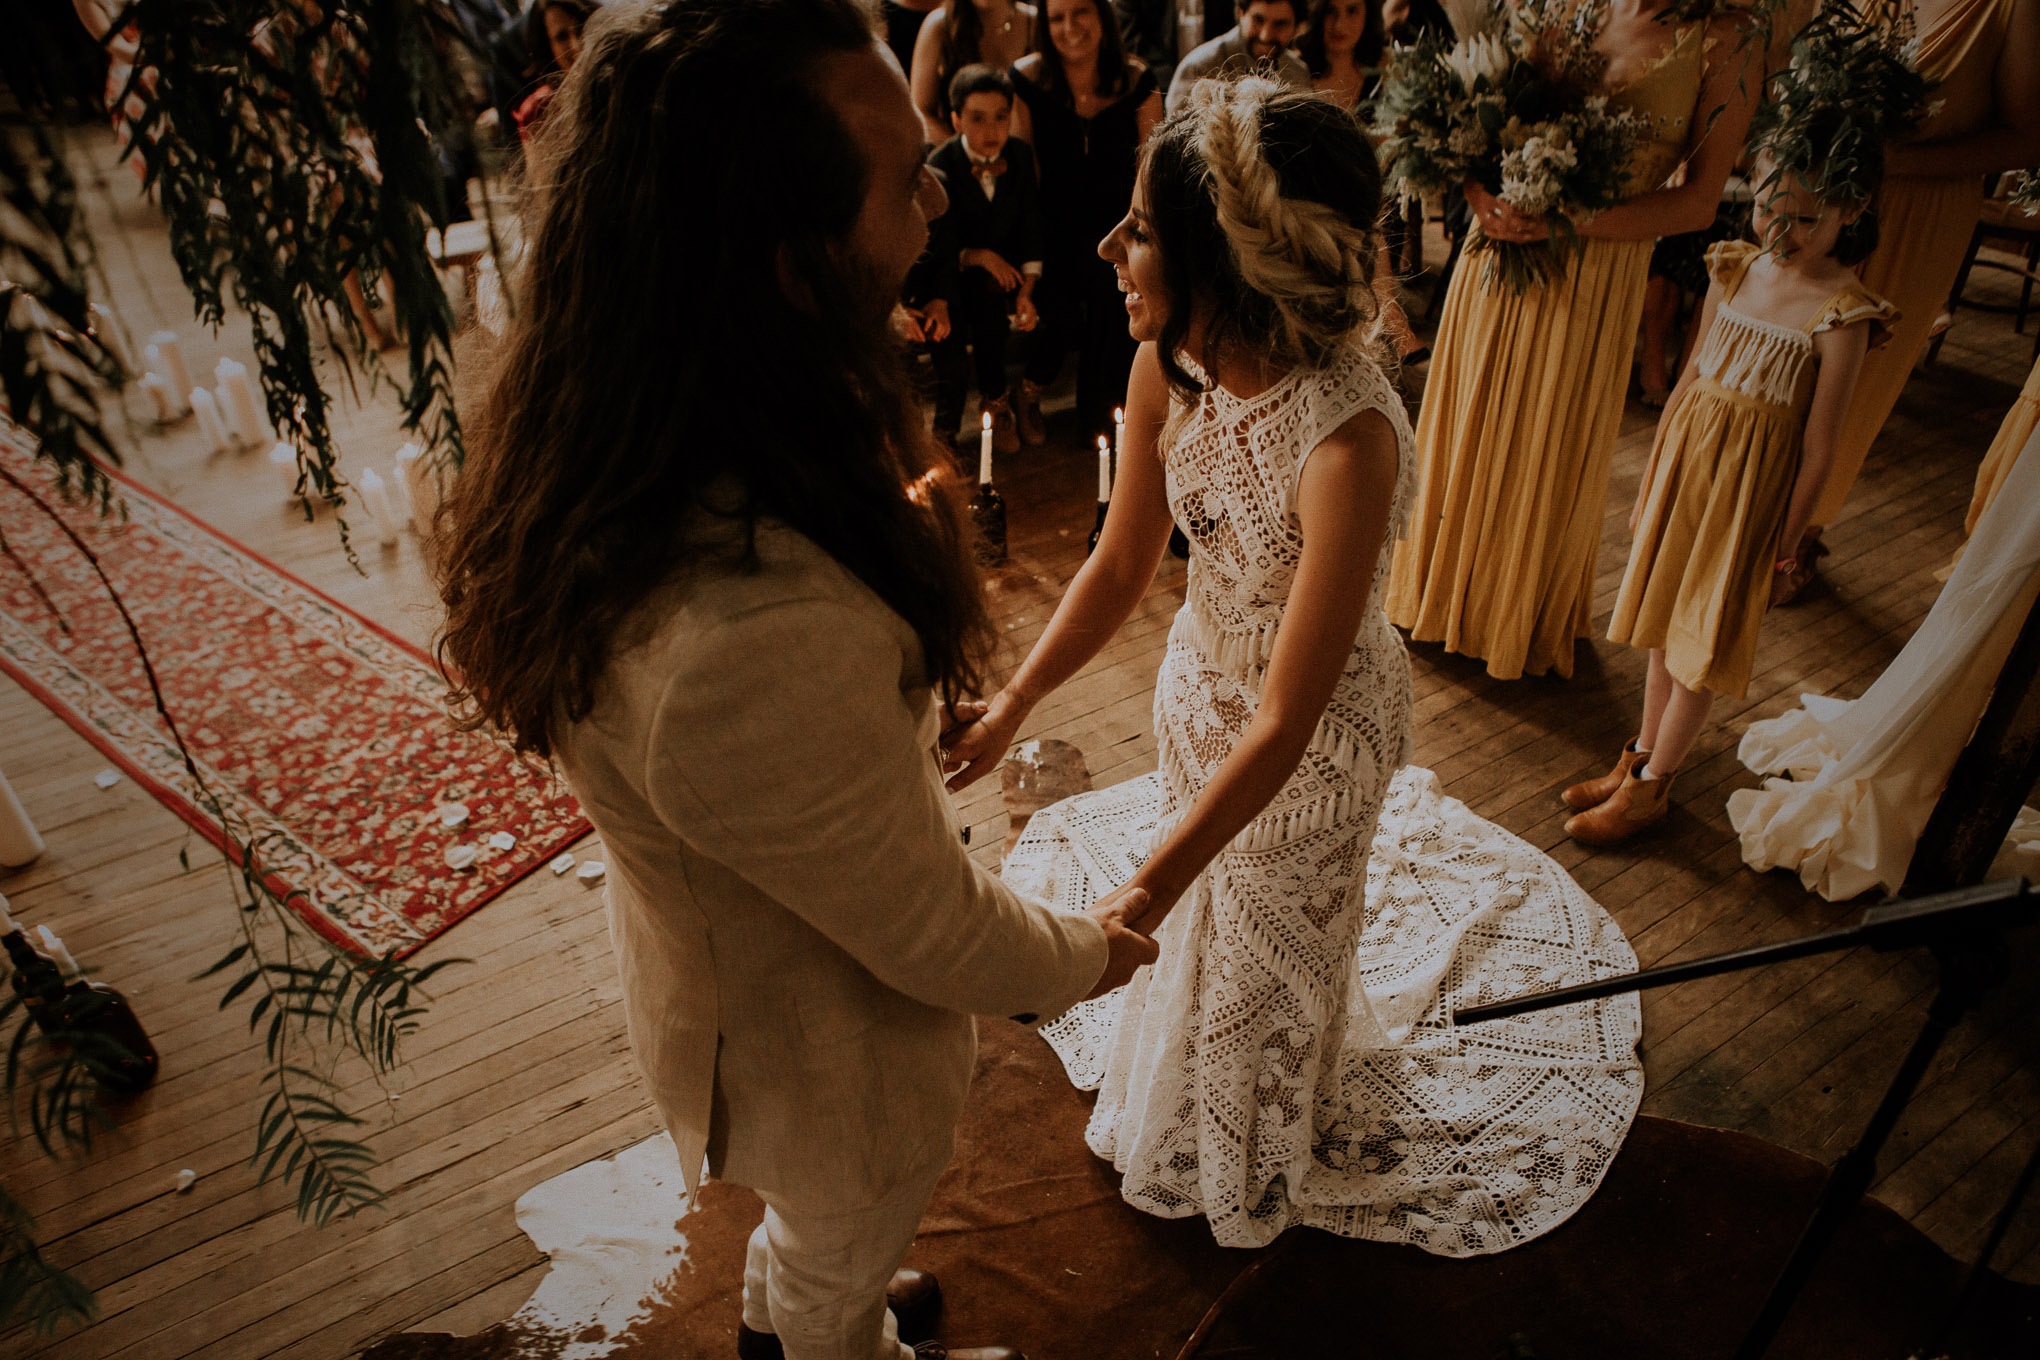 Laughter during boho chic wedding ceremony in a rustic shearing shed at Waldara Farm